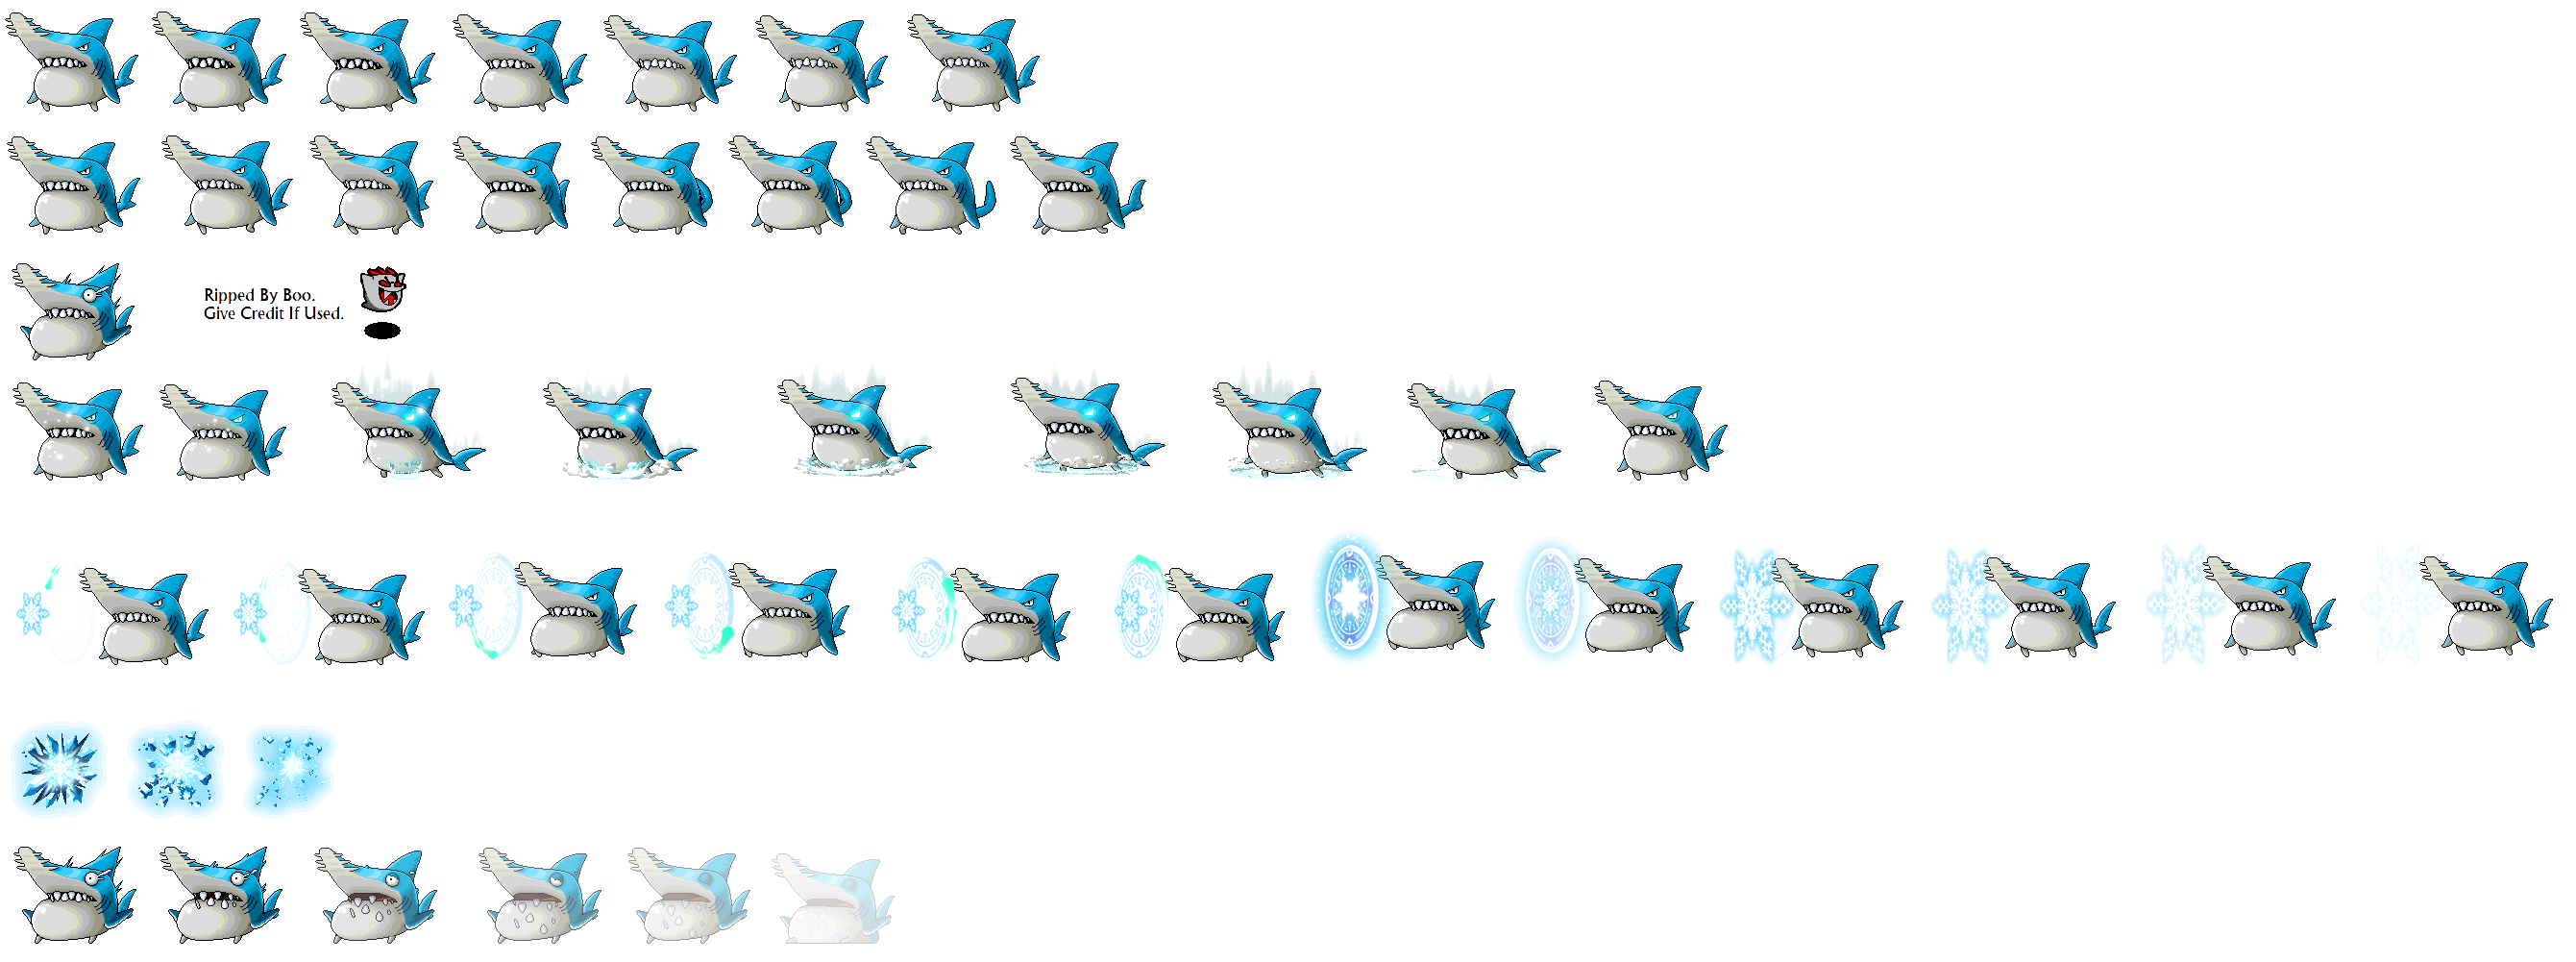 The Spriters Resource Full Sheet View Maplestory